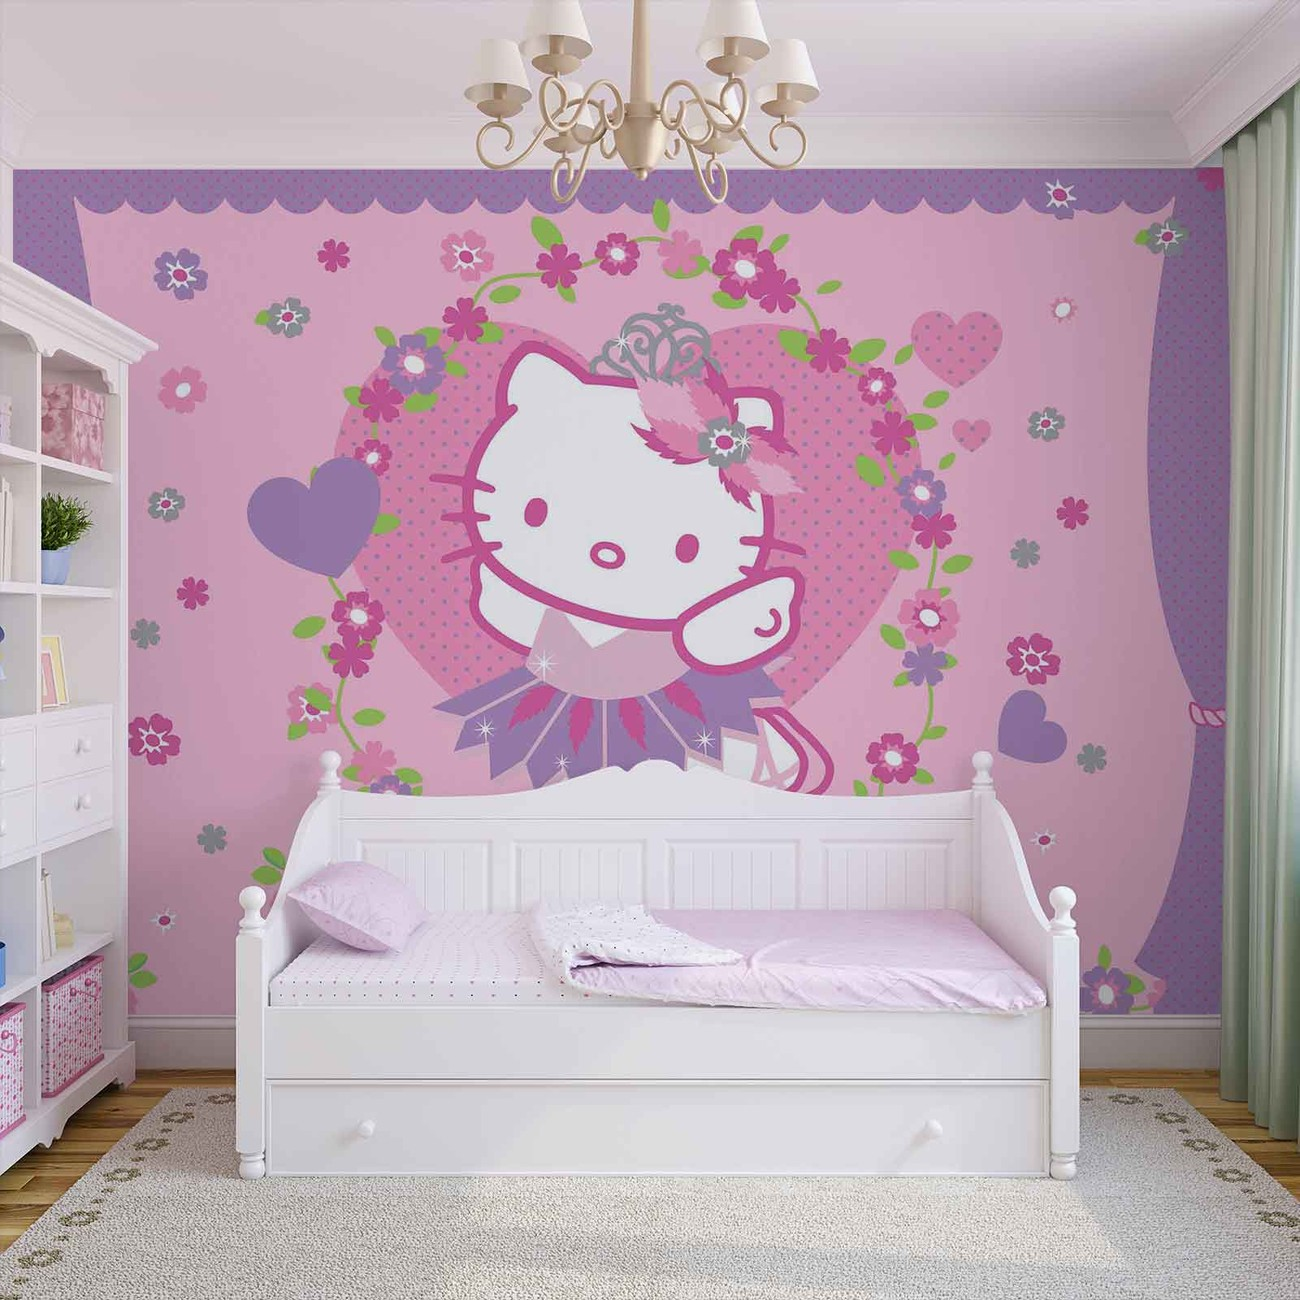 Must see Wallpaper Hello Kitty Room - 44412  Perfect Image Reference_489680.jpg